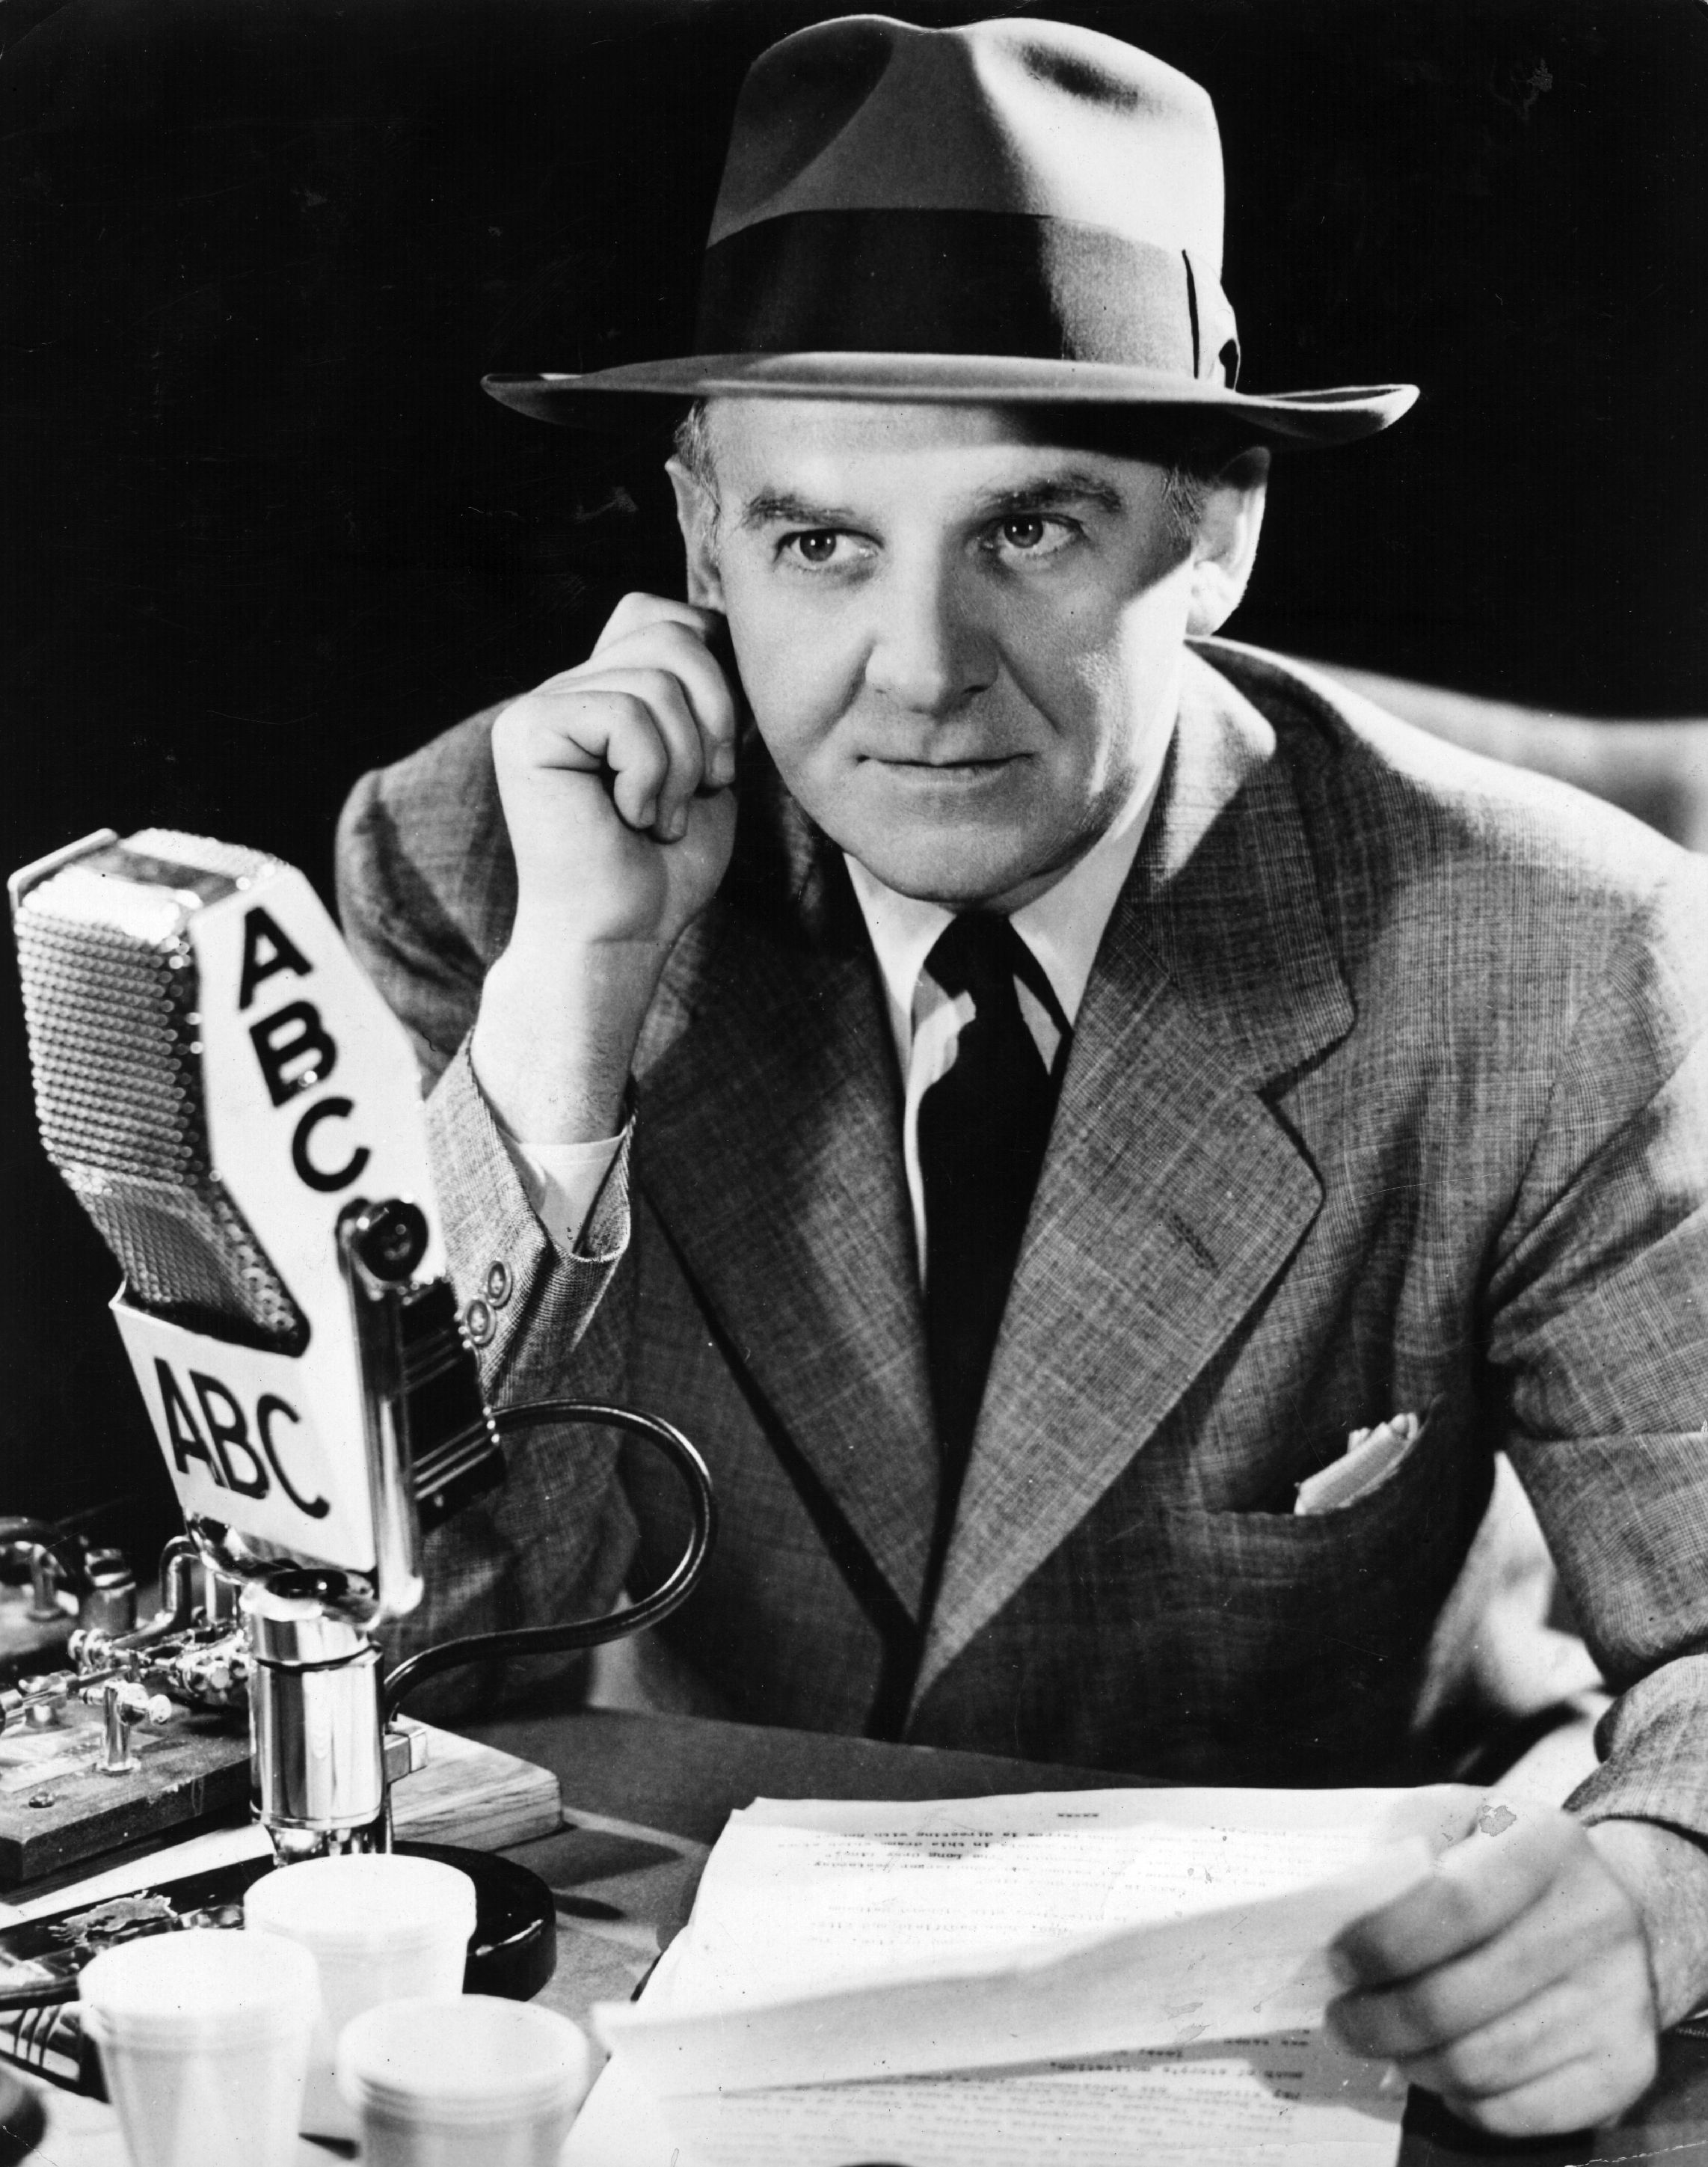 US news commentator, drama critic and gossip columnist Walter Winchell, during a radio broadcast.